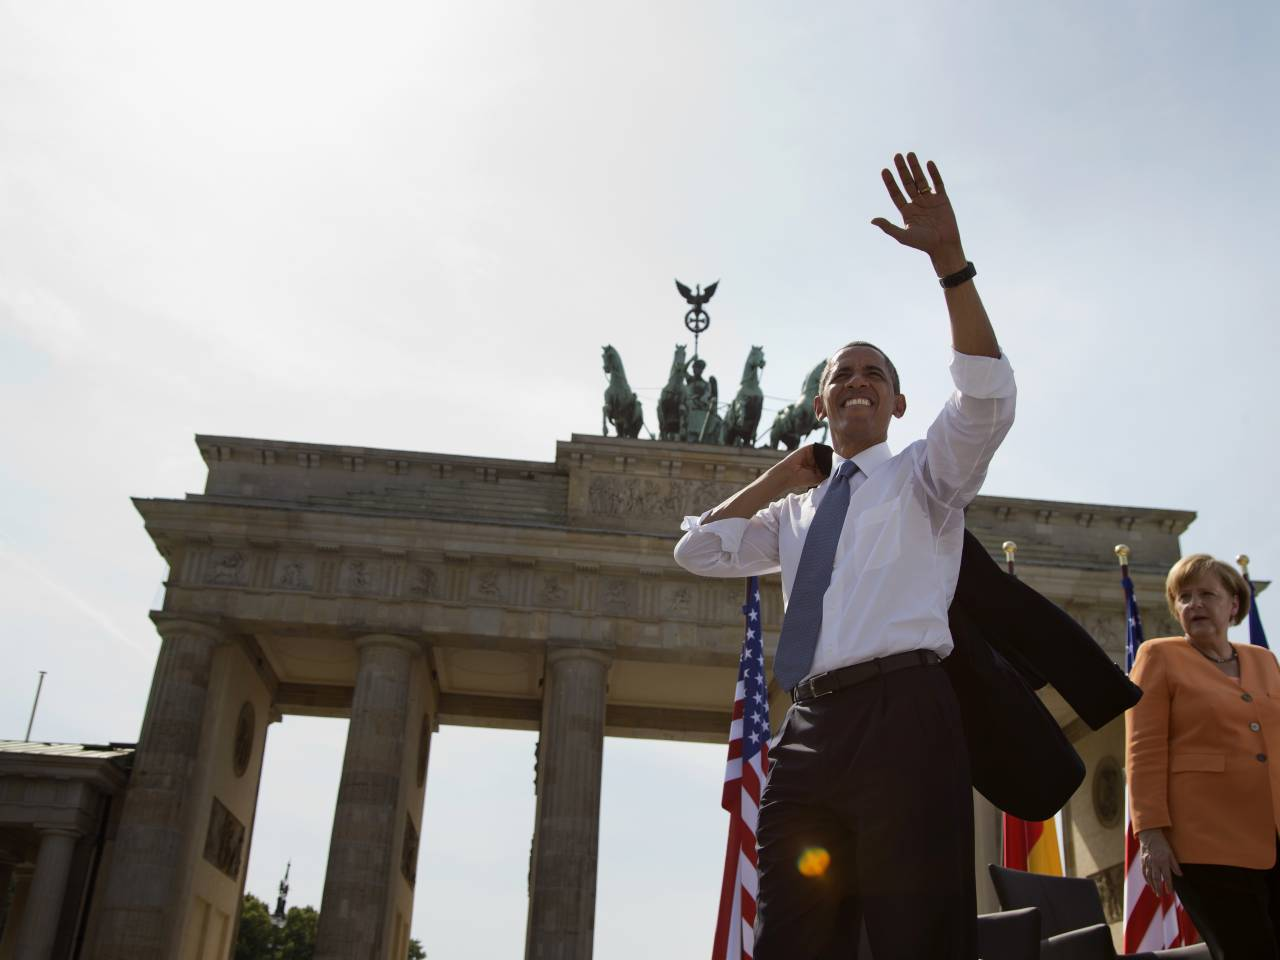 Security high in Berlin ahead of Obama visit